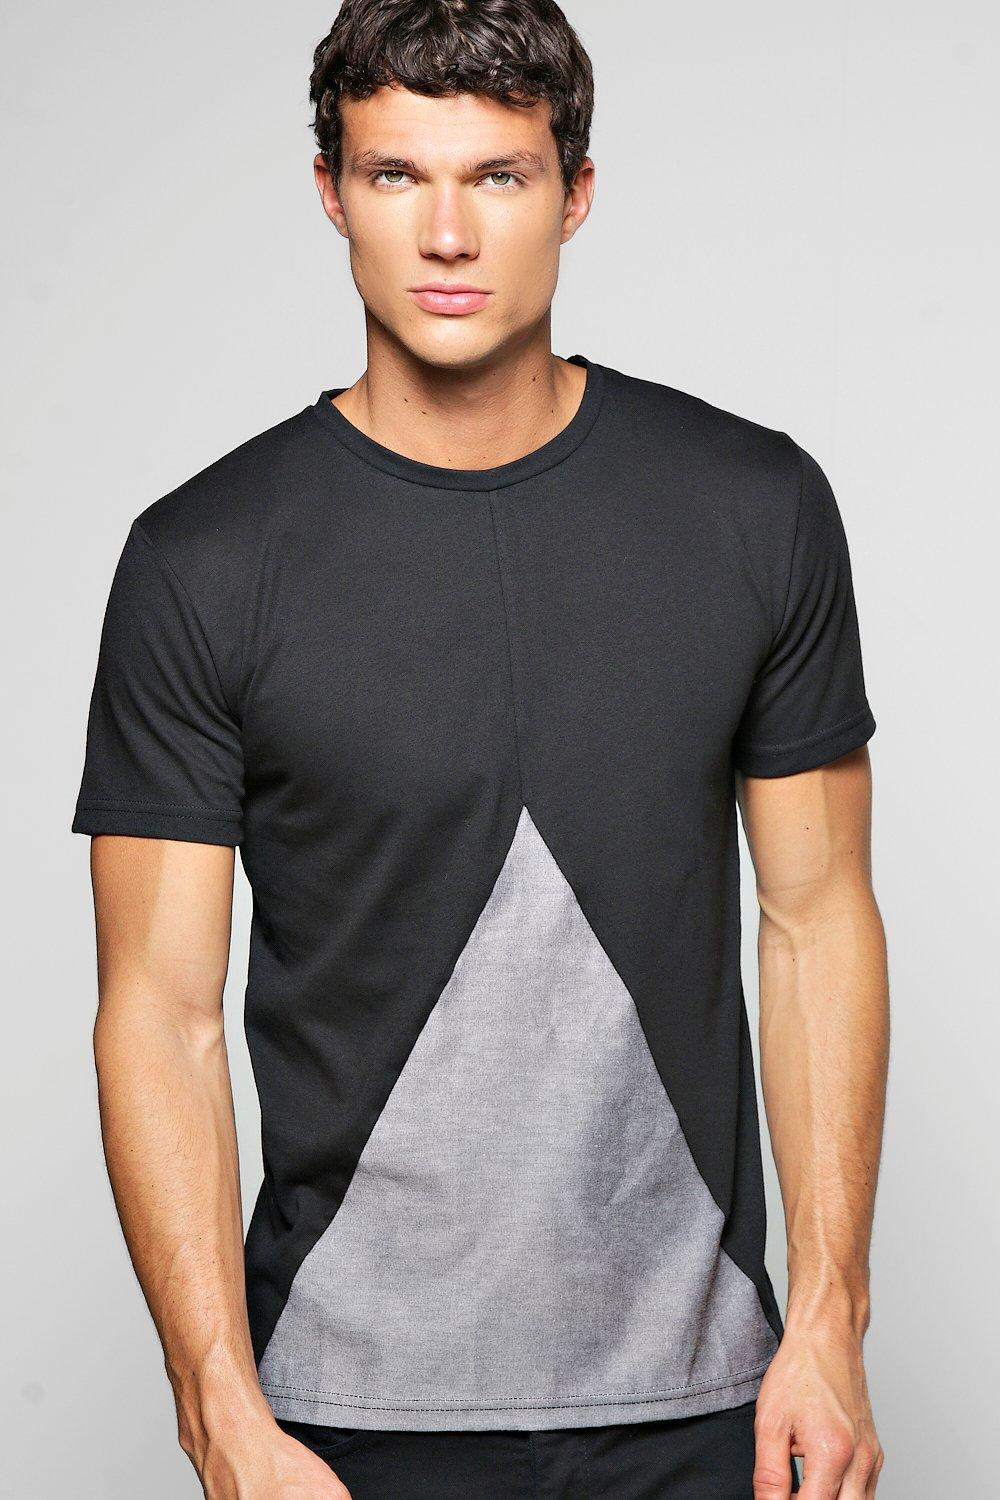 Spliced Woven Panel T Shirt